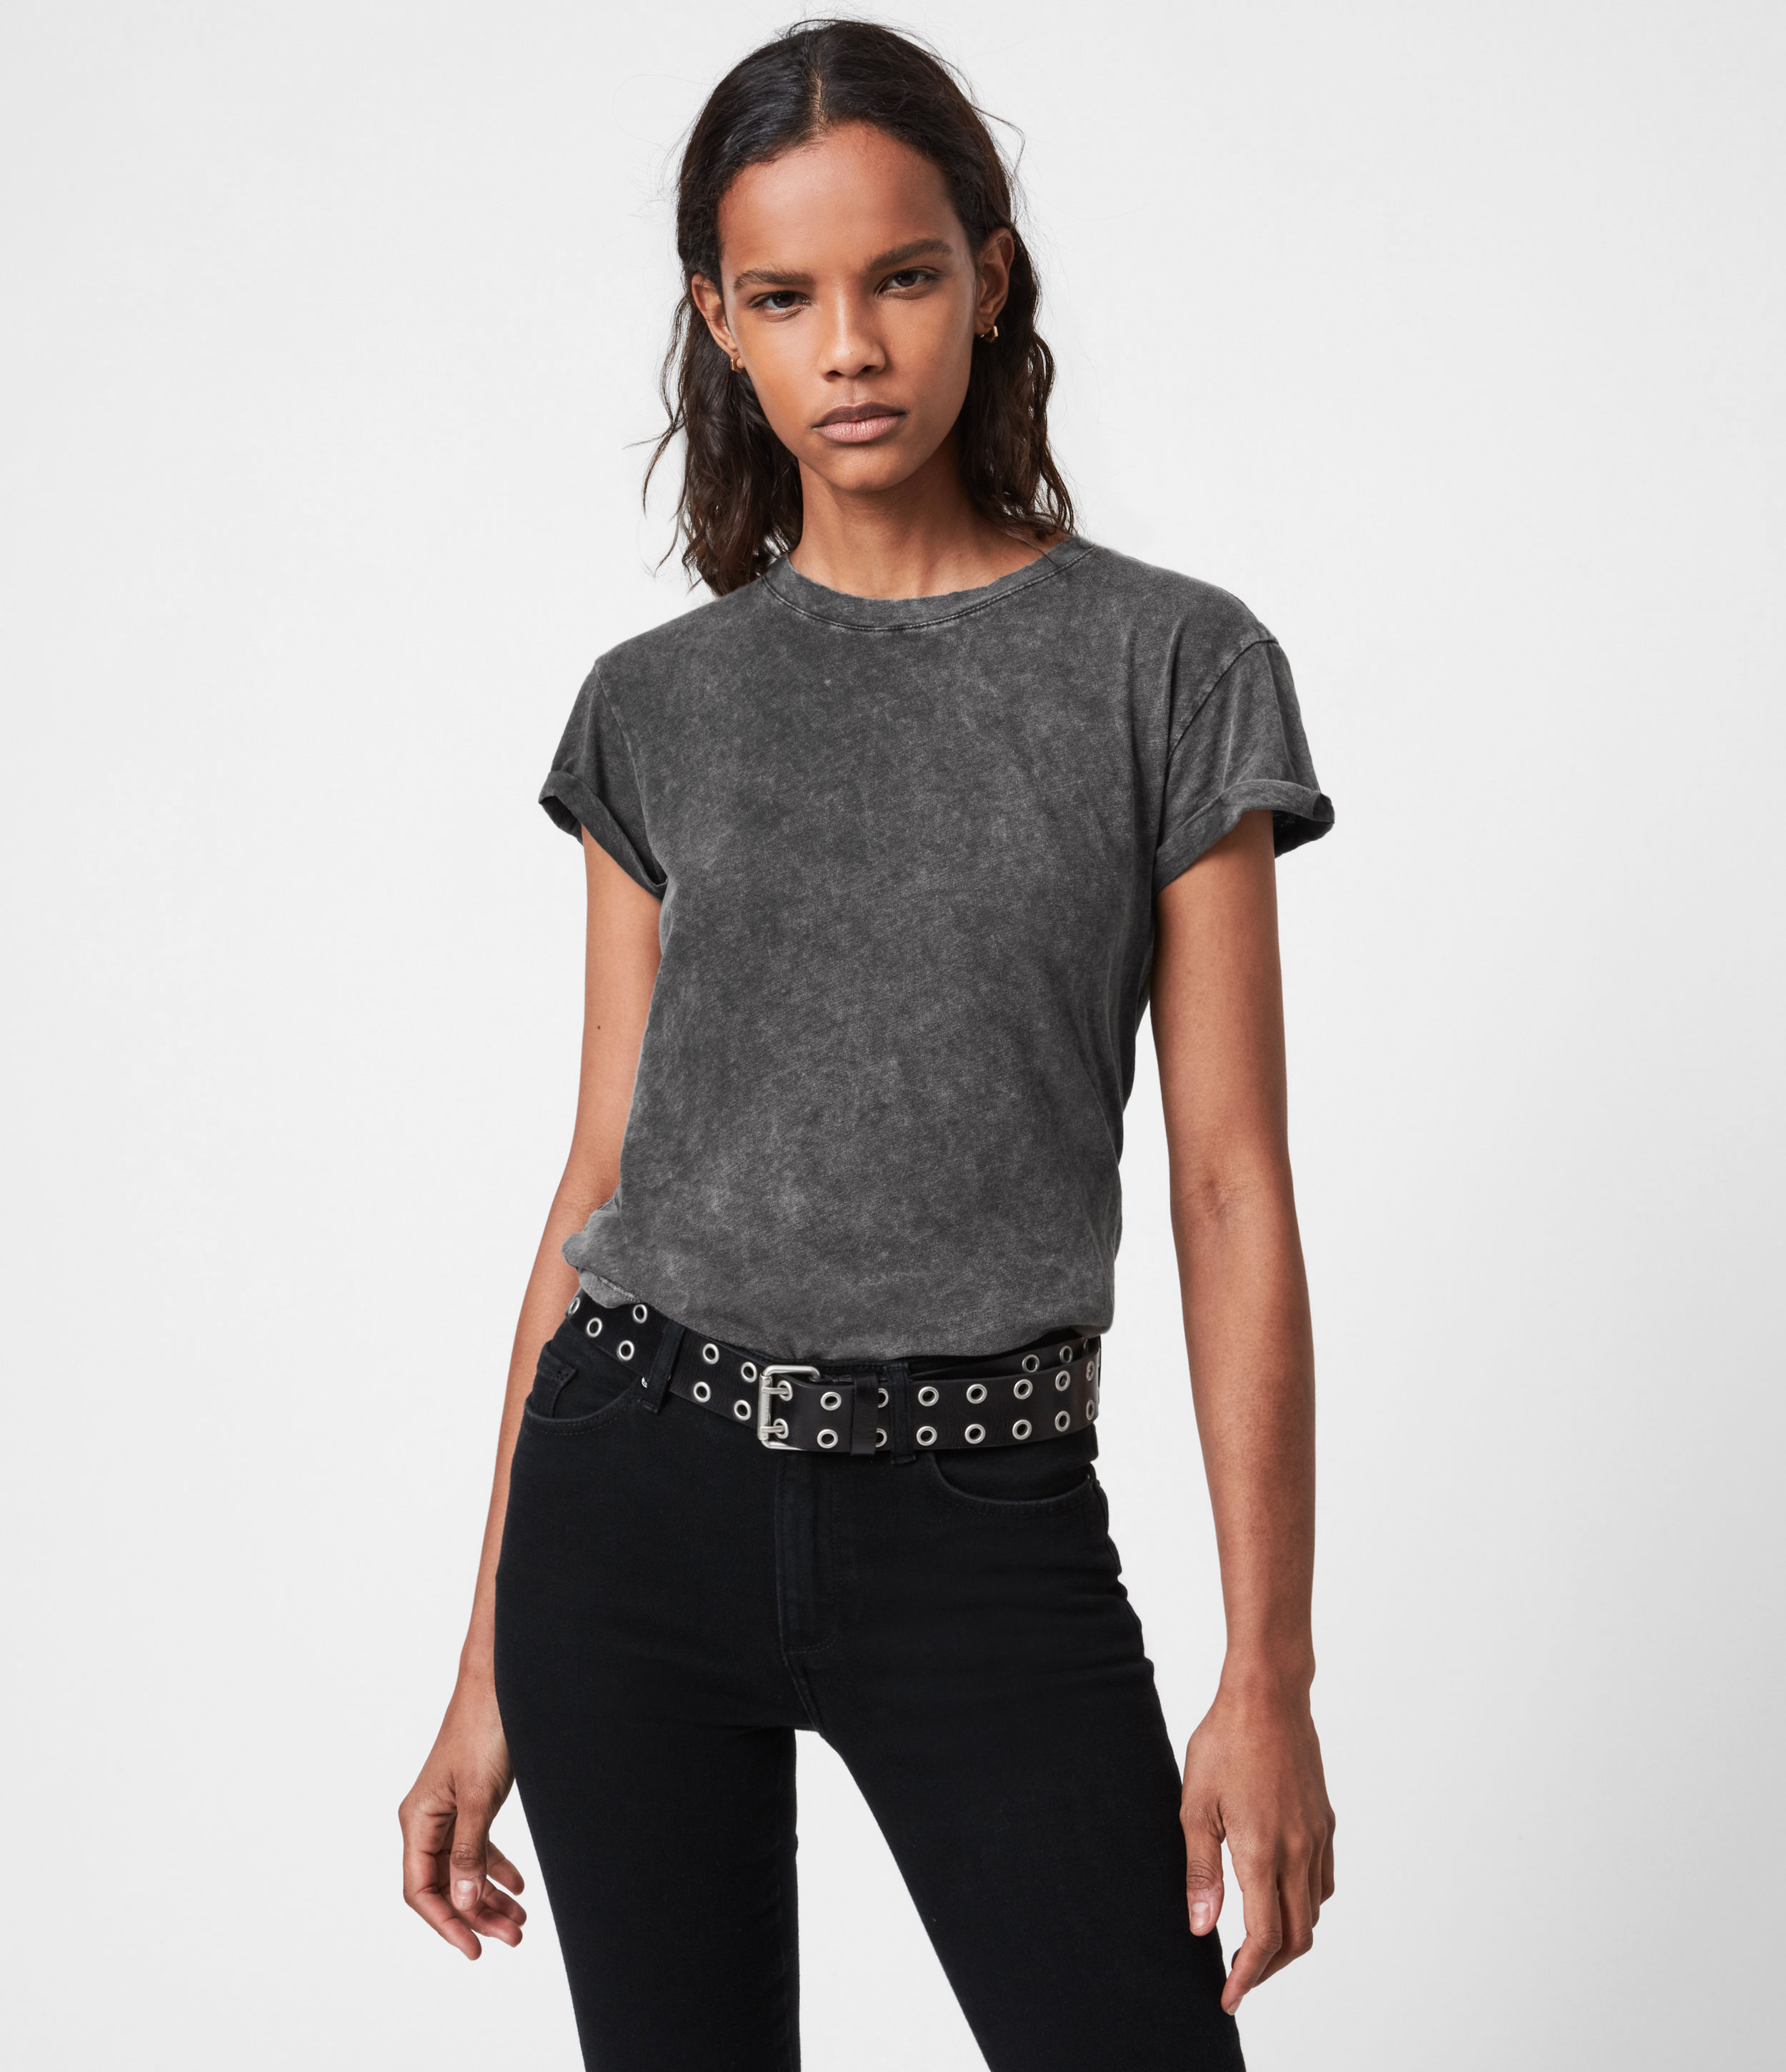 AllSaints Womens Anna T-Shirt, Acid Washed Black, Size: 10